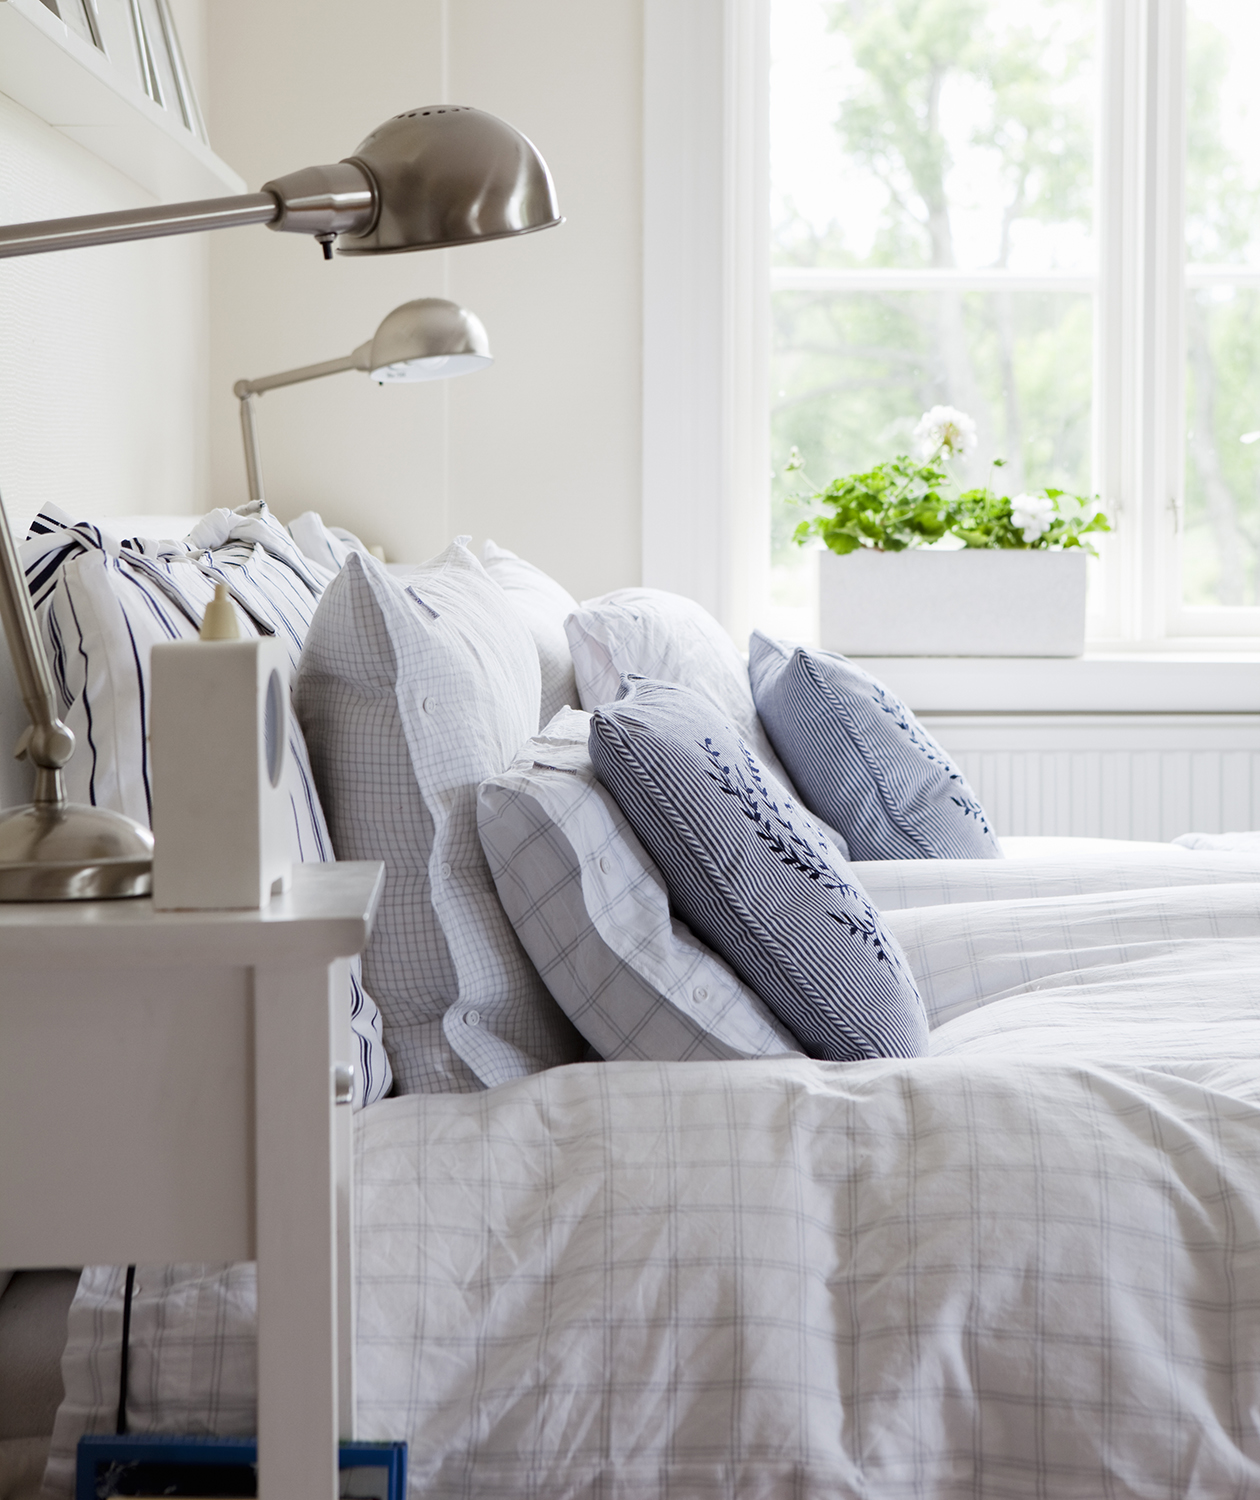 Bedroom with well-made bed